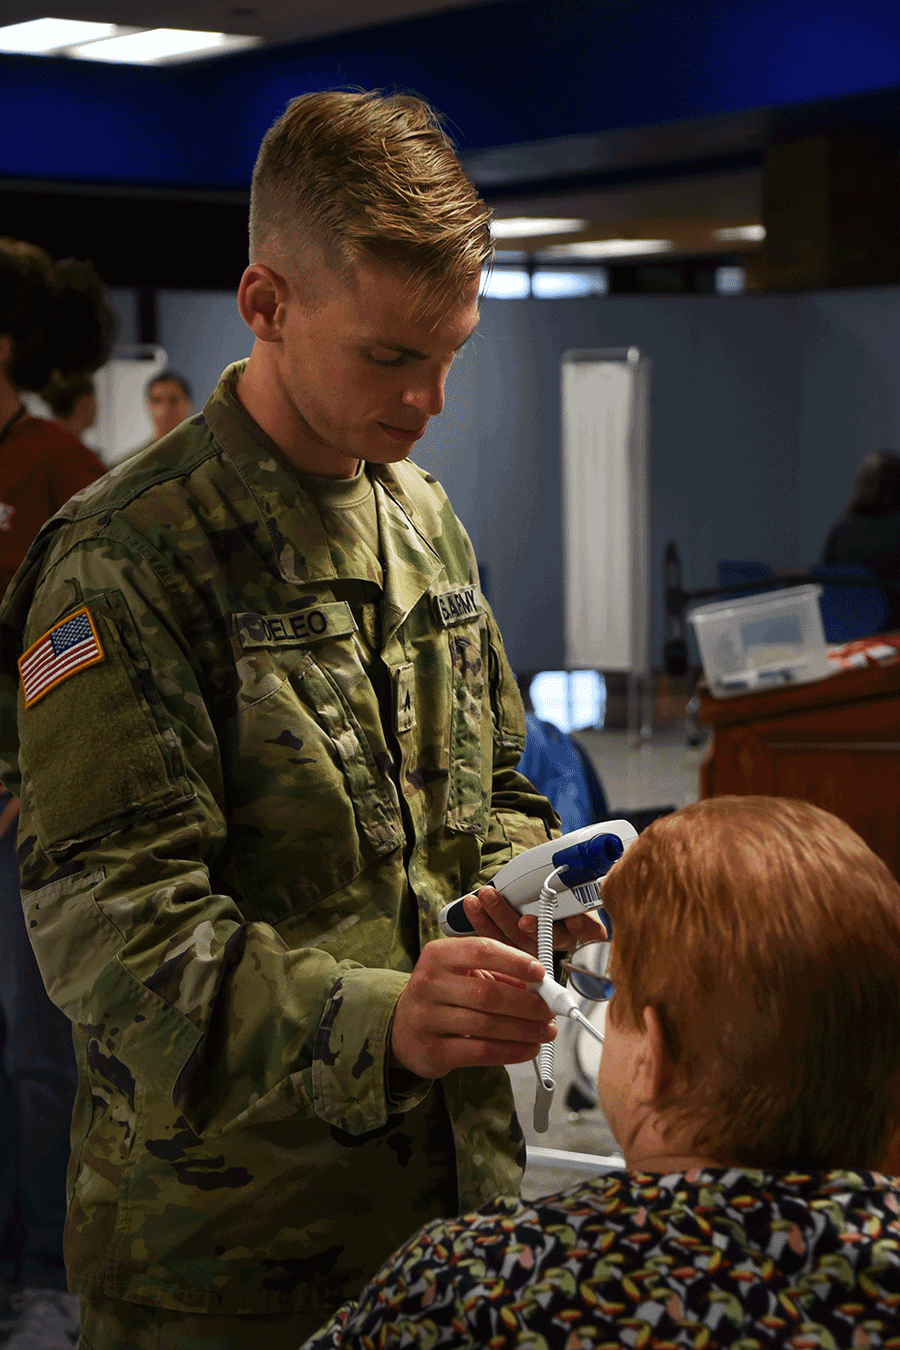 An Ohio Army National Guard health care specialist takes a patient's vitals.